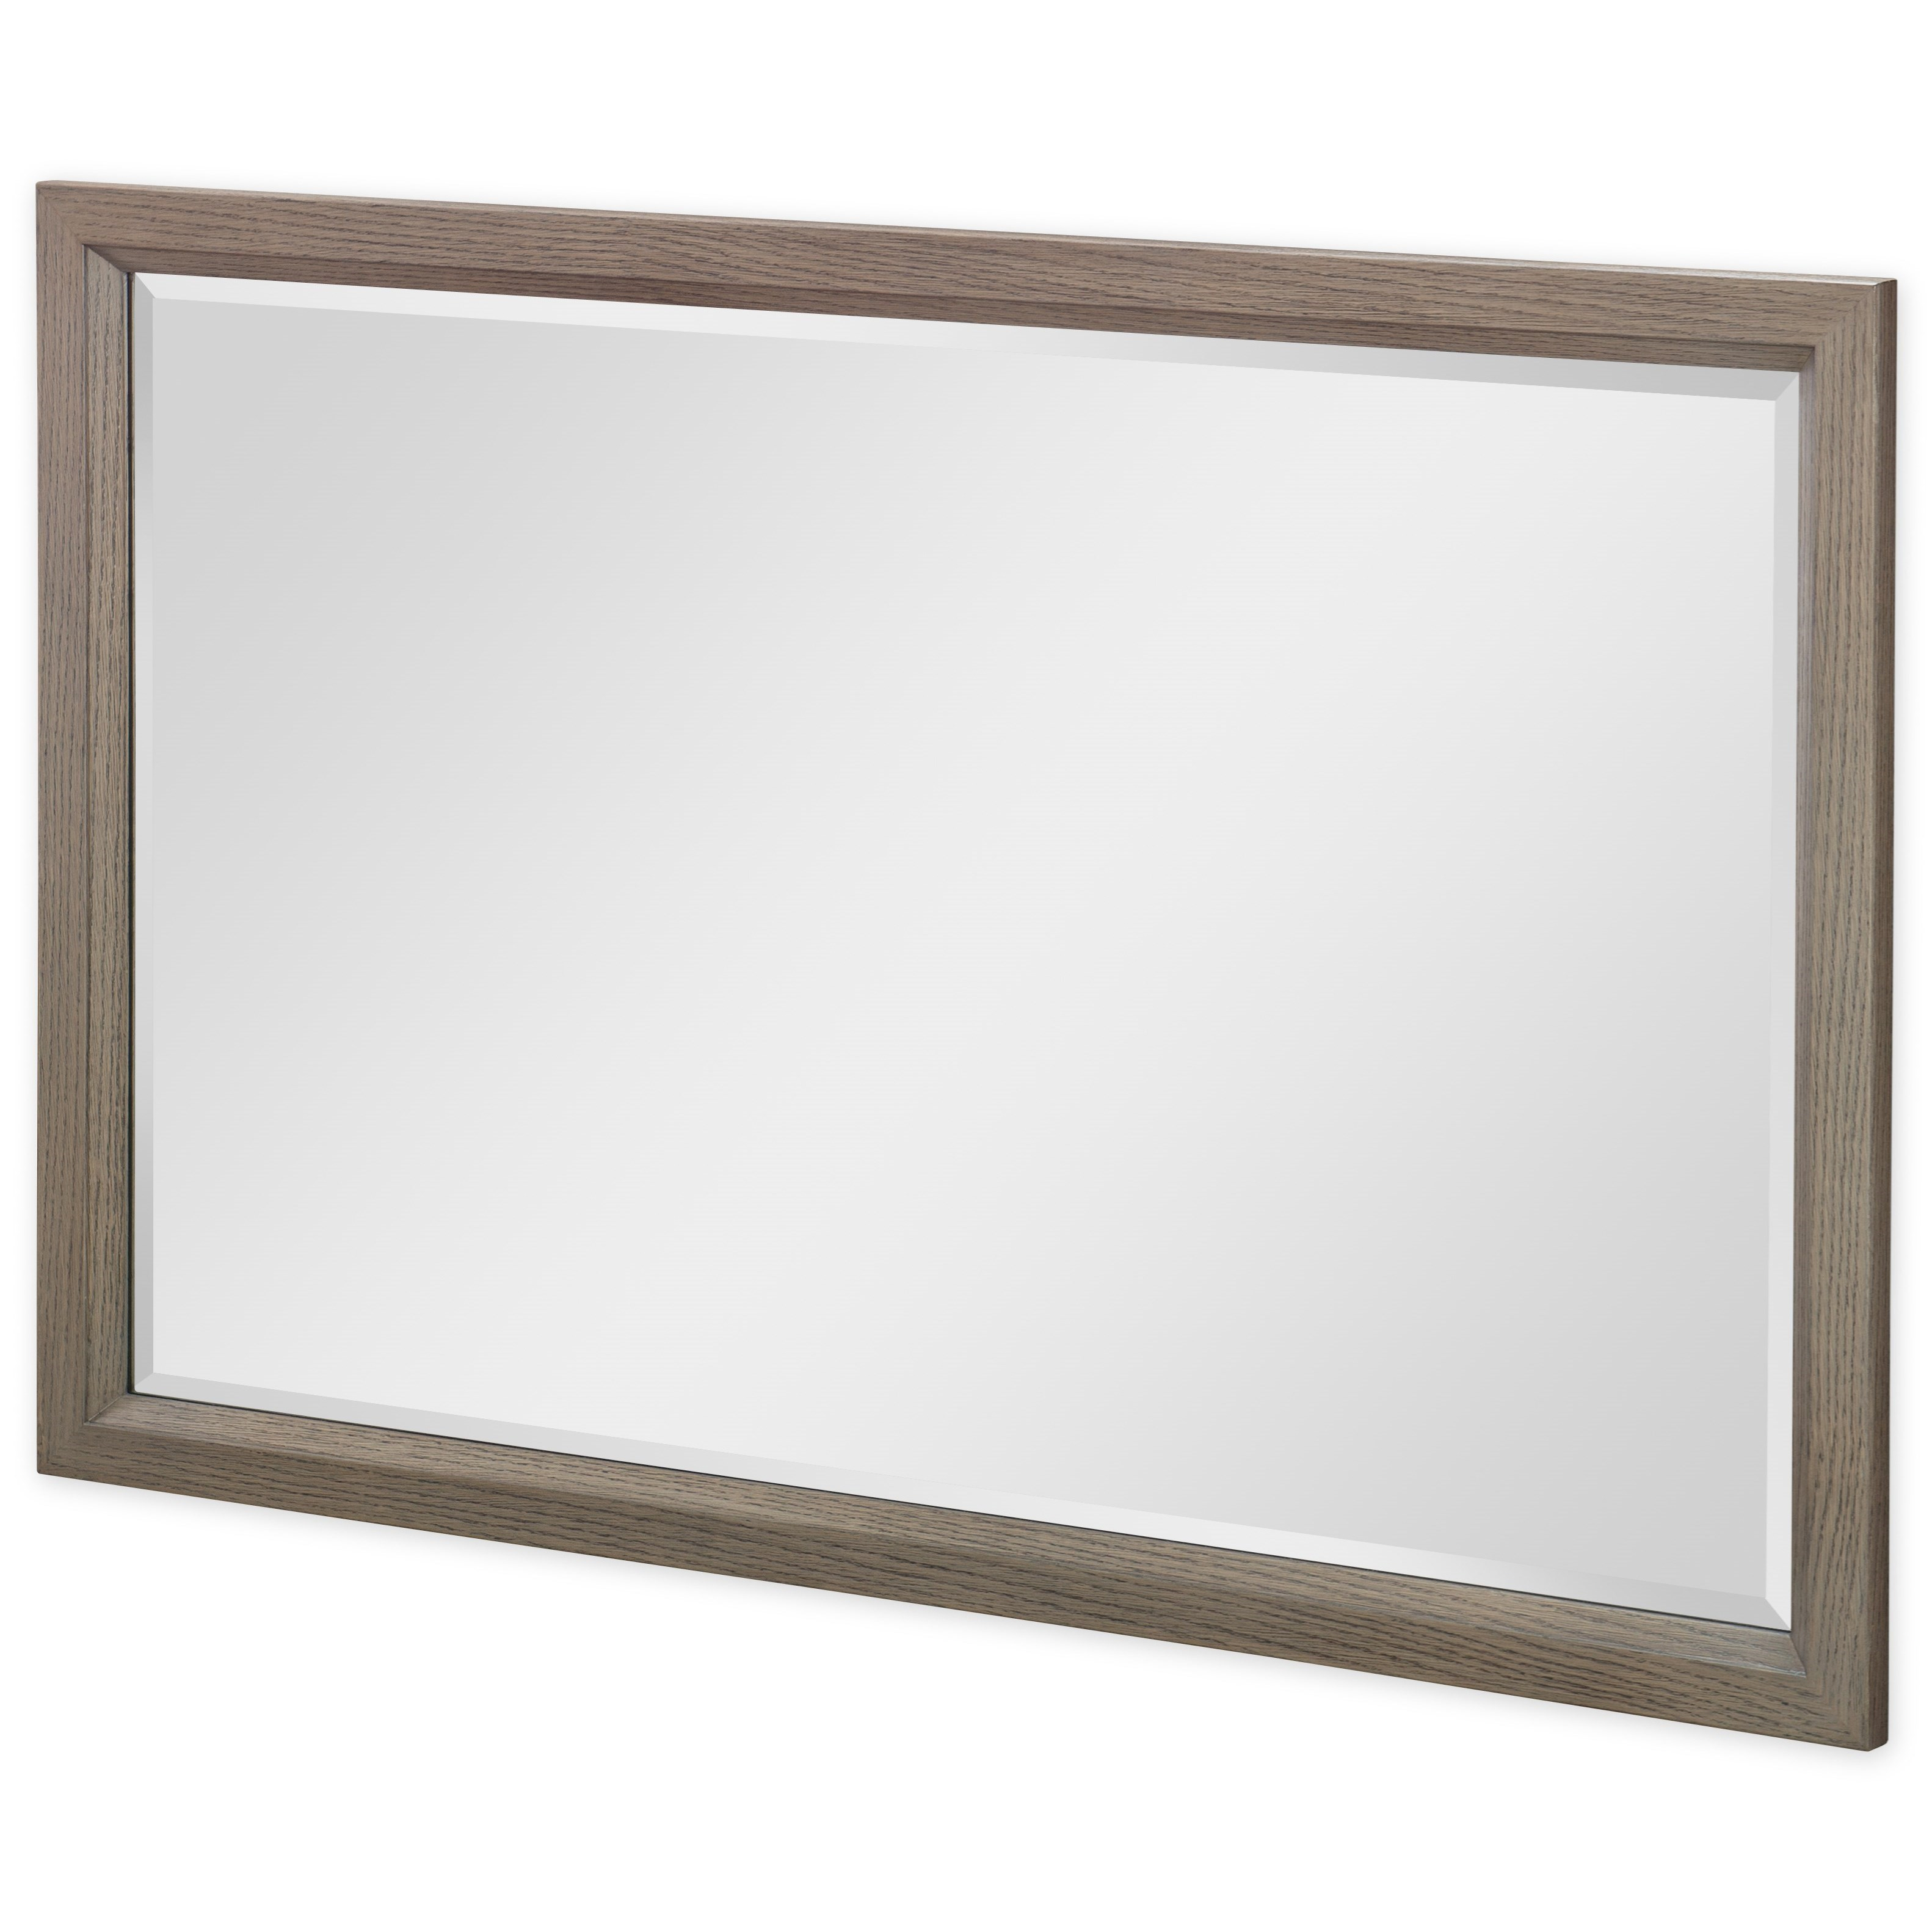 Highline Mirror by Rachael Ray Home by Legacy Classic at HomeWorld Furniture